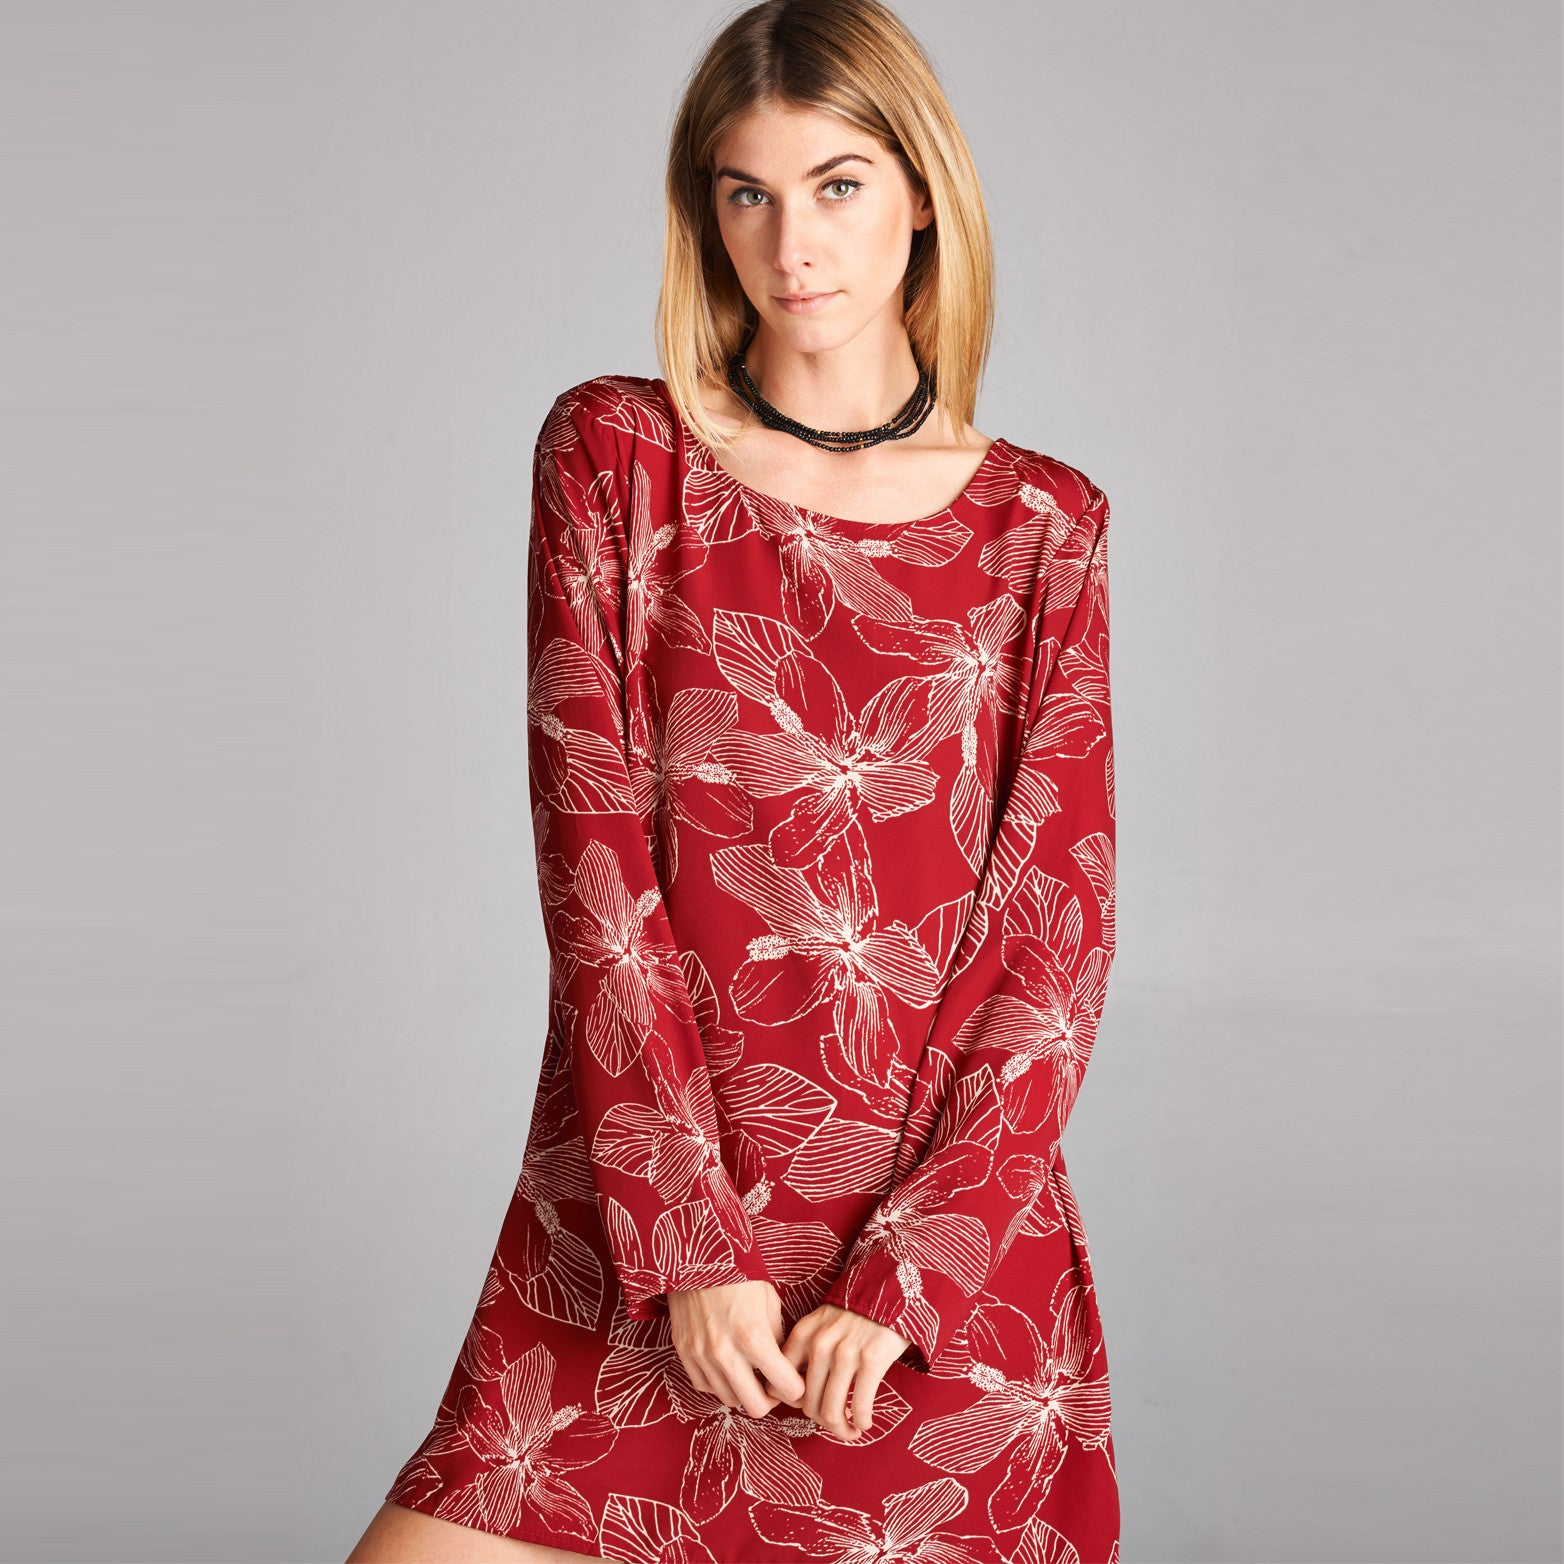 Mono Floral Scoop Neck Tunic Dress